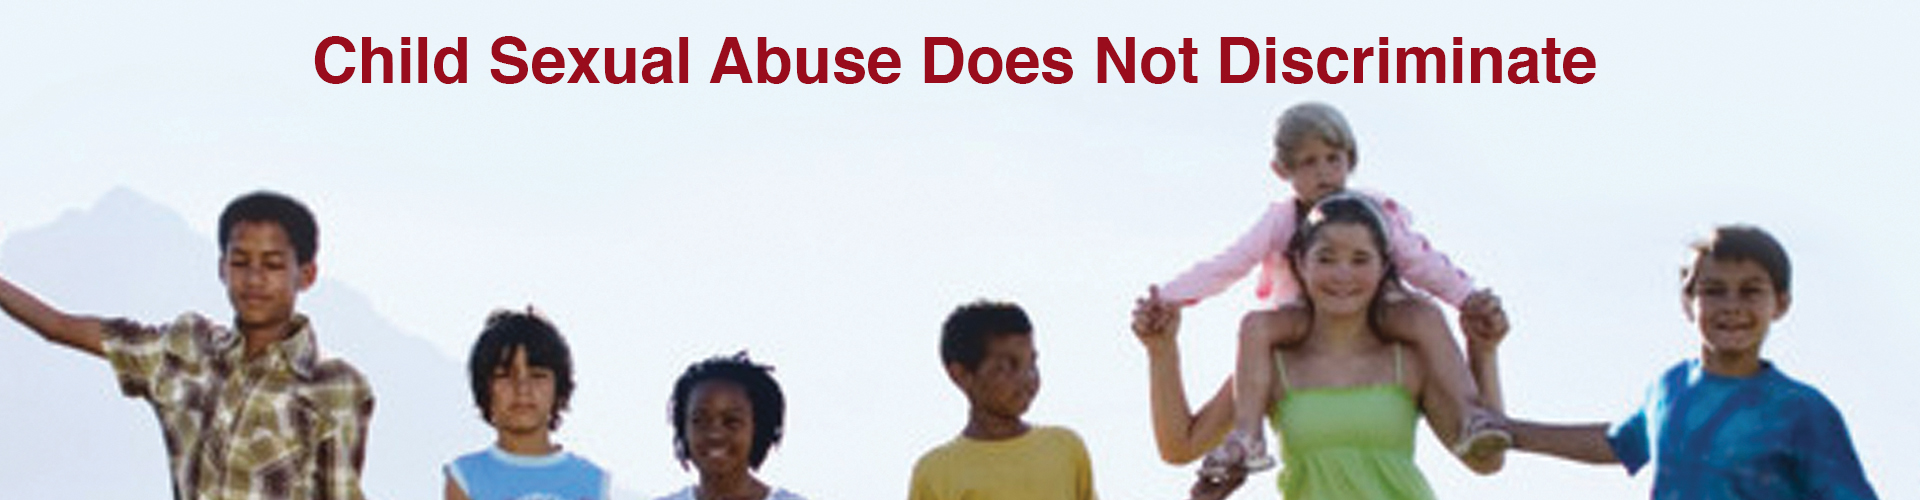 Child Sexual Abuse Does Not Discriminate